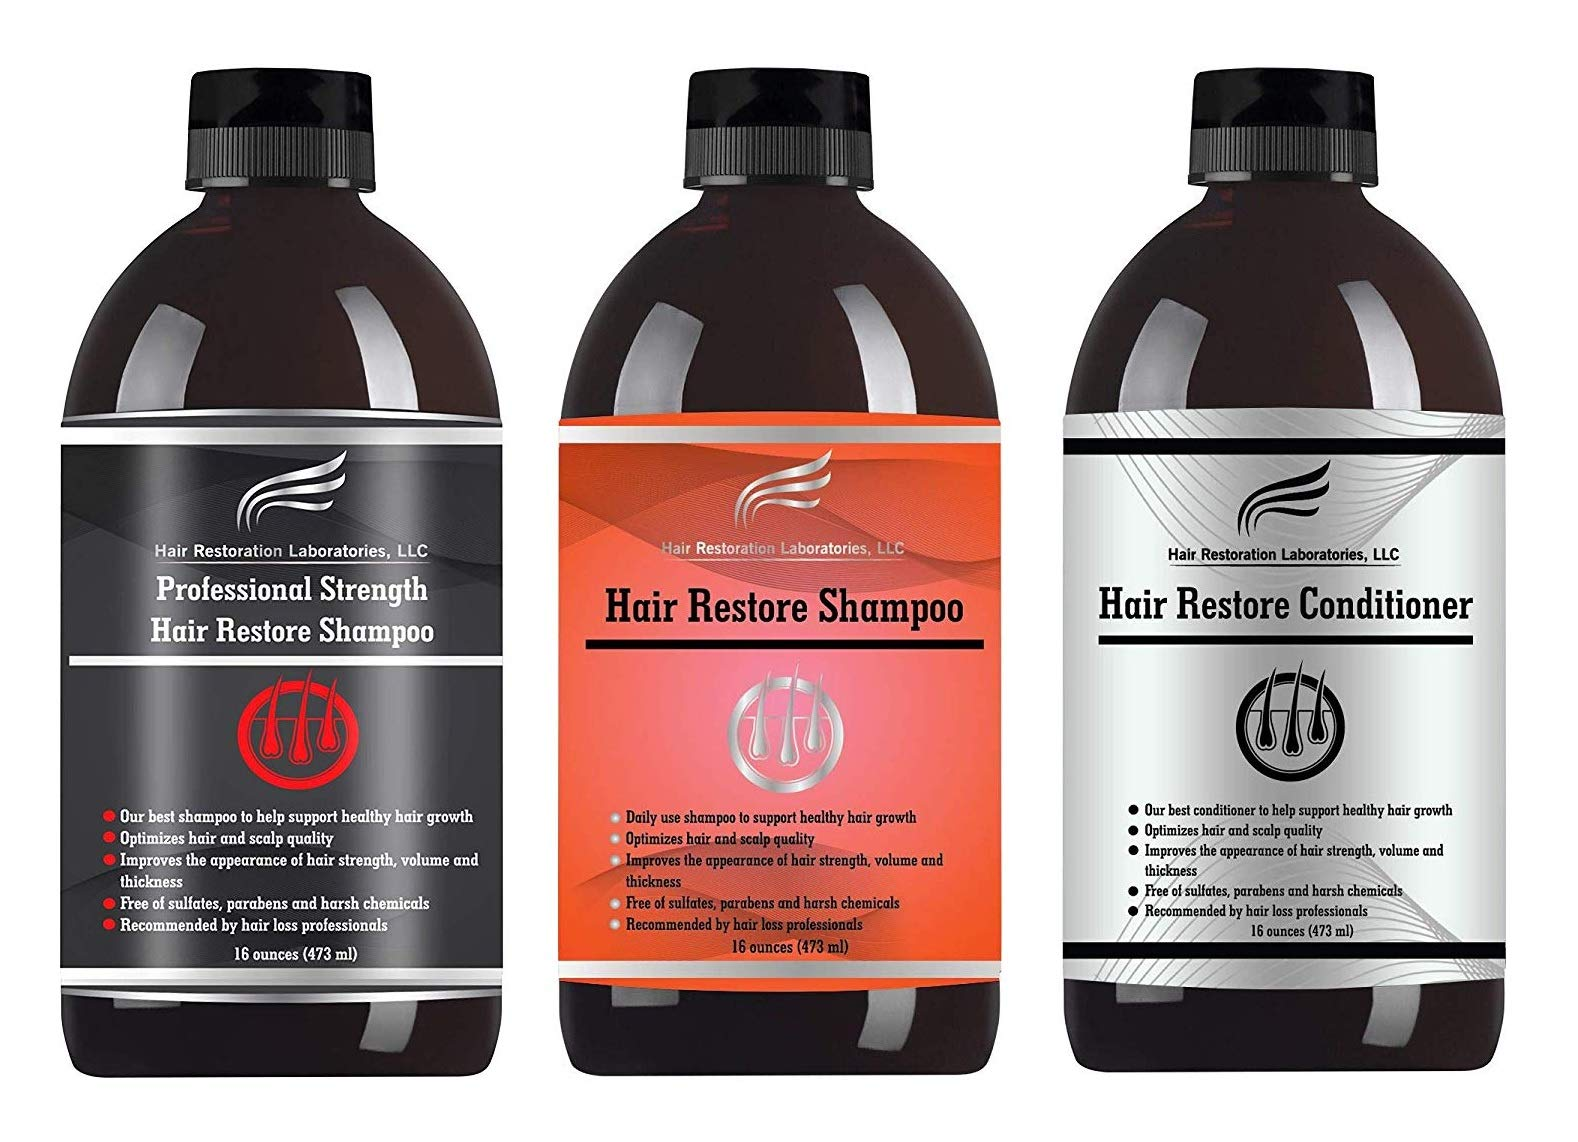 Hair Restoration Laboratories - Hair Restore DHT Blocking Shampoo, Conditioner and Professional Strength Shampoo Set. The Most Effective Daily Use Hair Growth Treatment For Men and Woman by Hair Restoration Laboratories, LLC